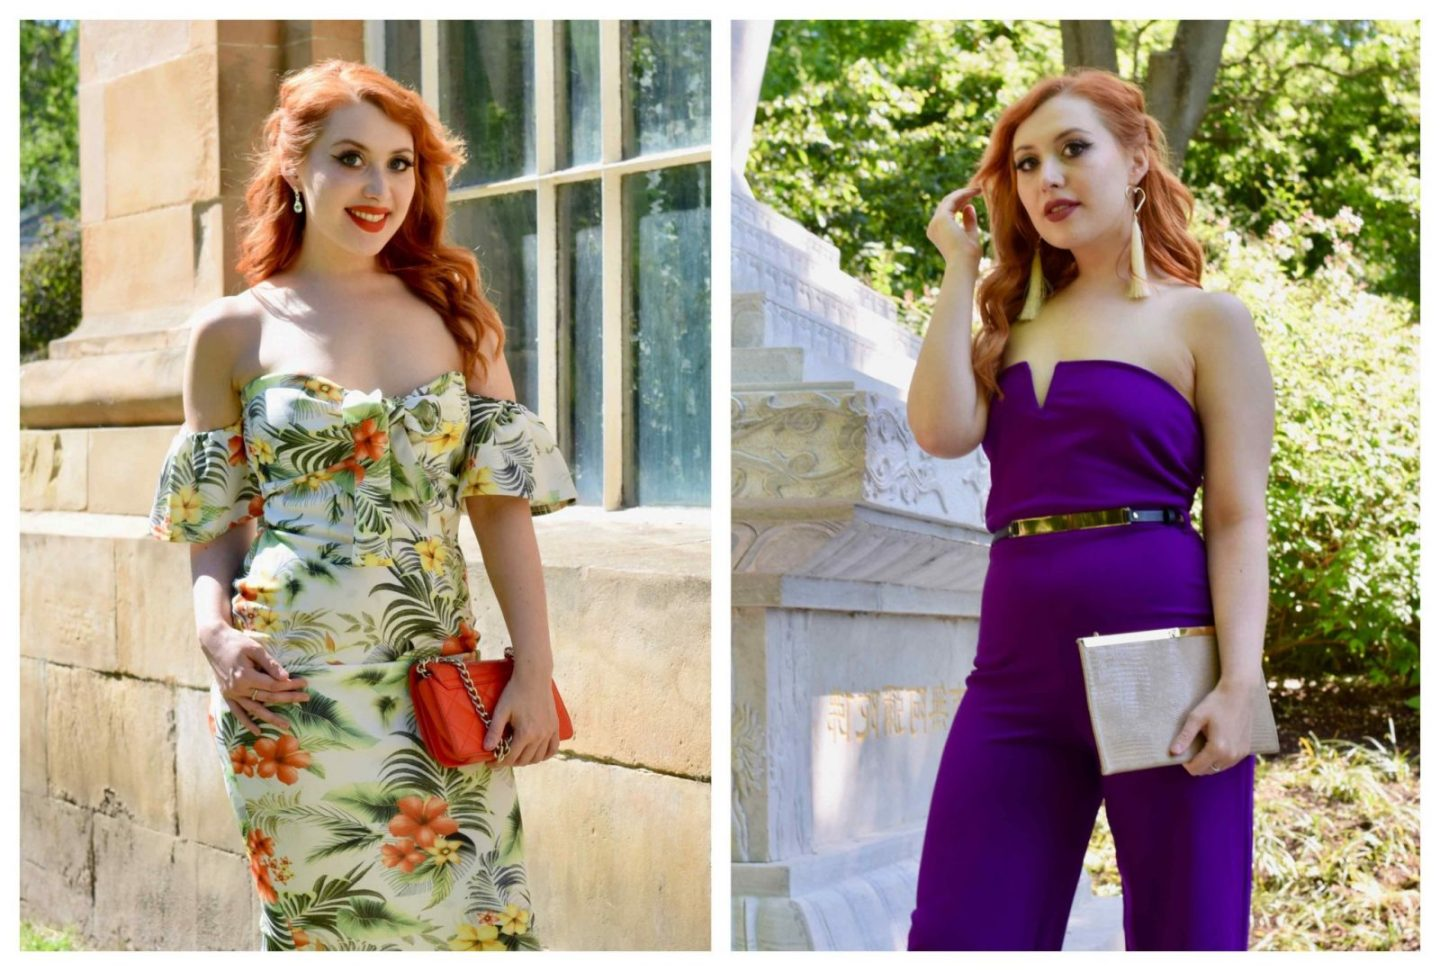 Summer wedding outfit inspiration – day guest outfits to stand out in